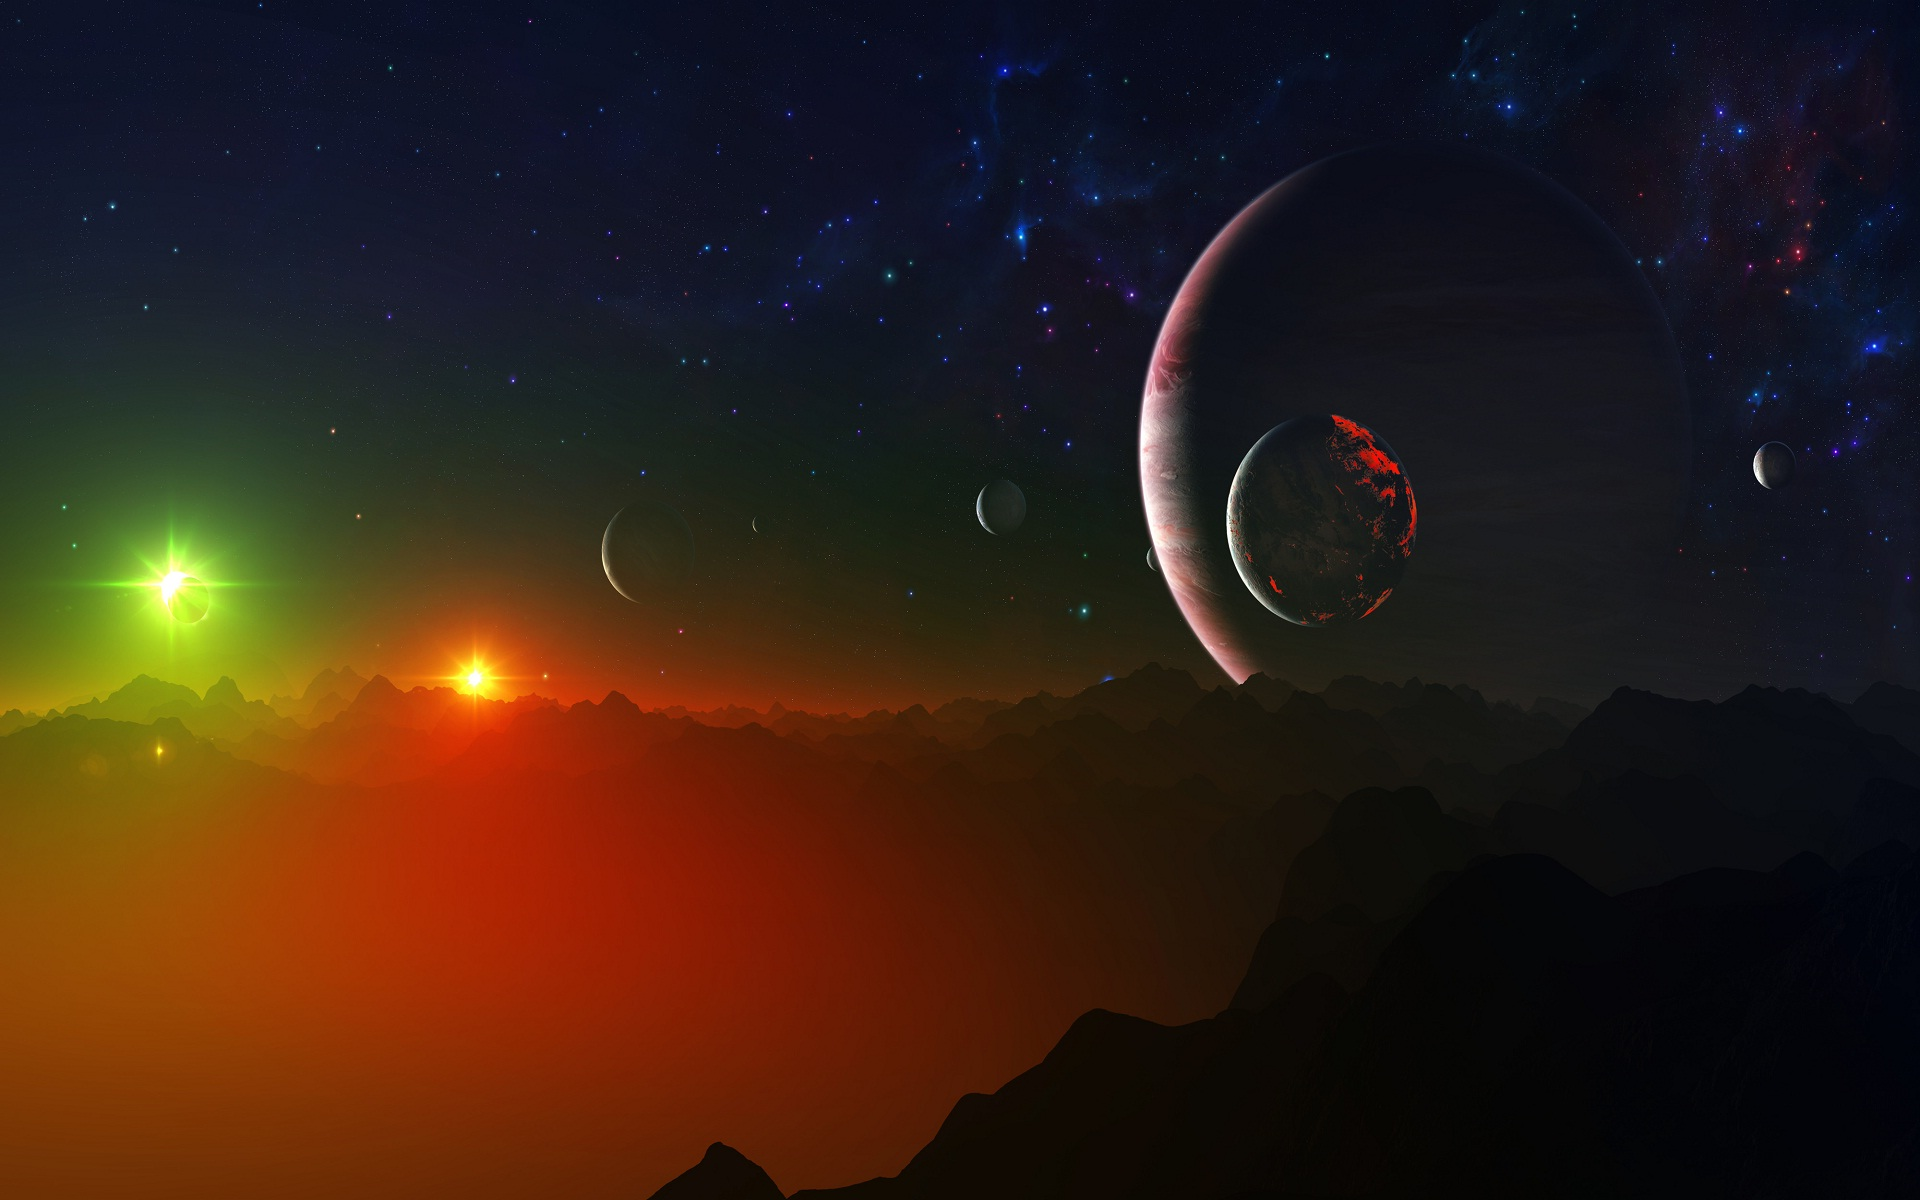 Good night galaxy 3D wallpaper HD Wallpapers Rocks 1920x1200